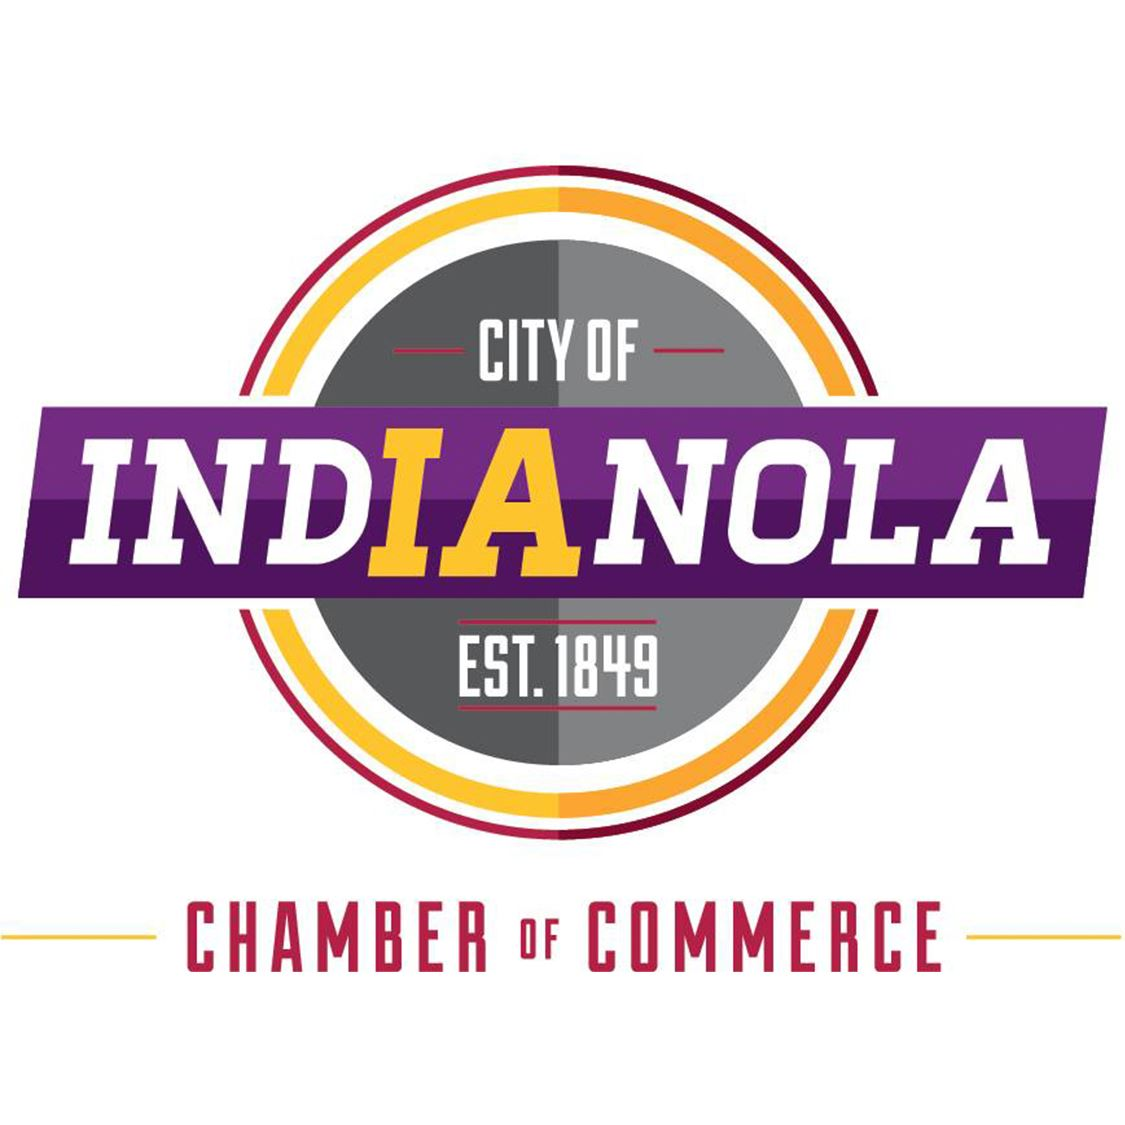 2020 Indianola Chamber of Commerce square